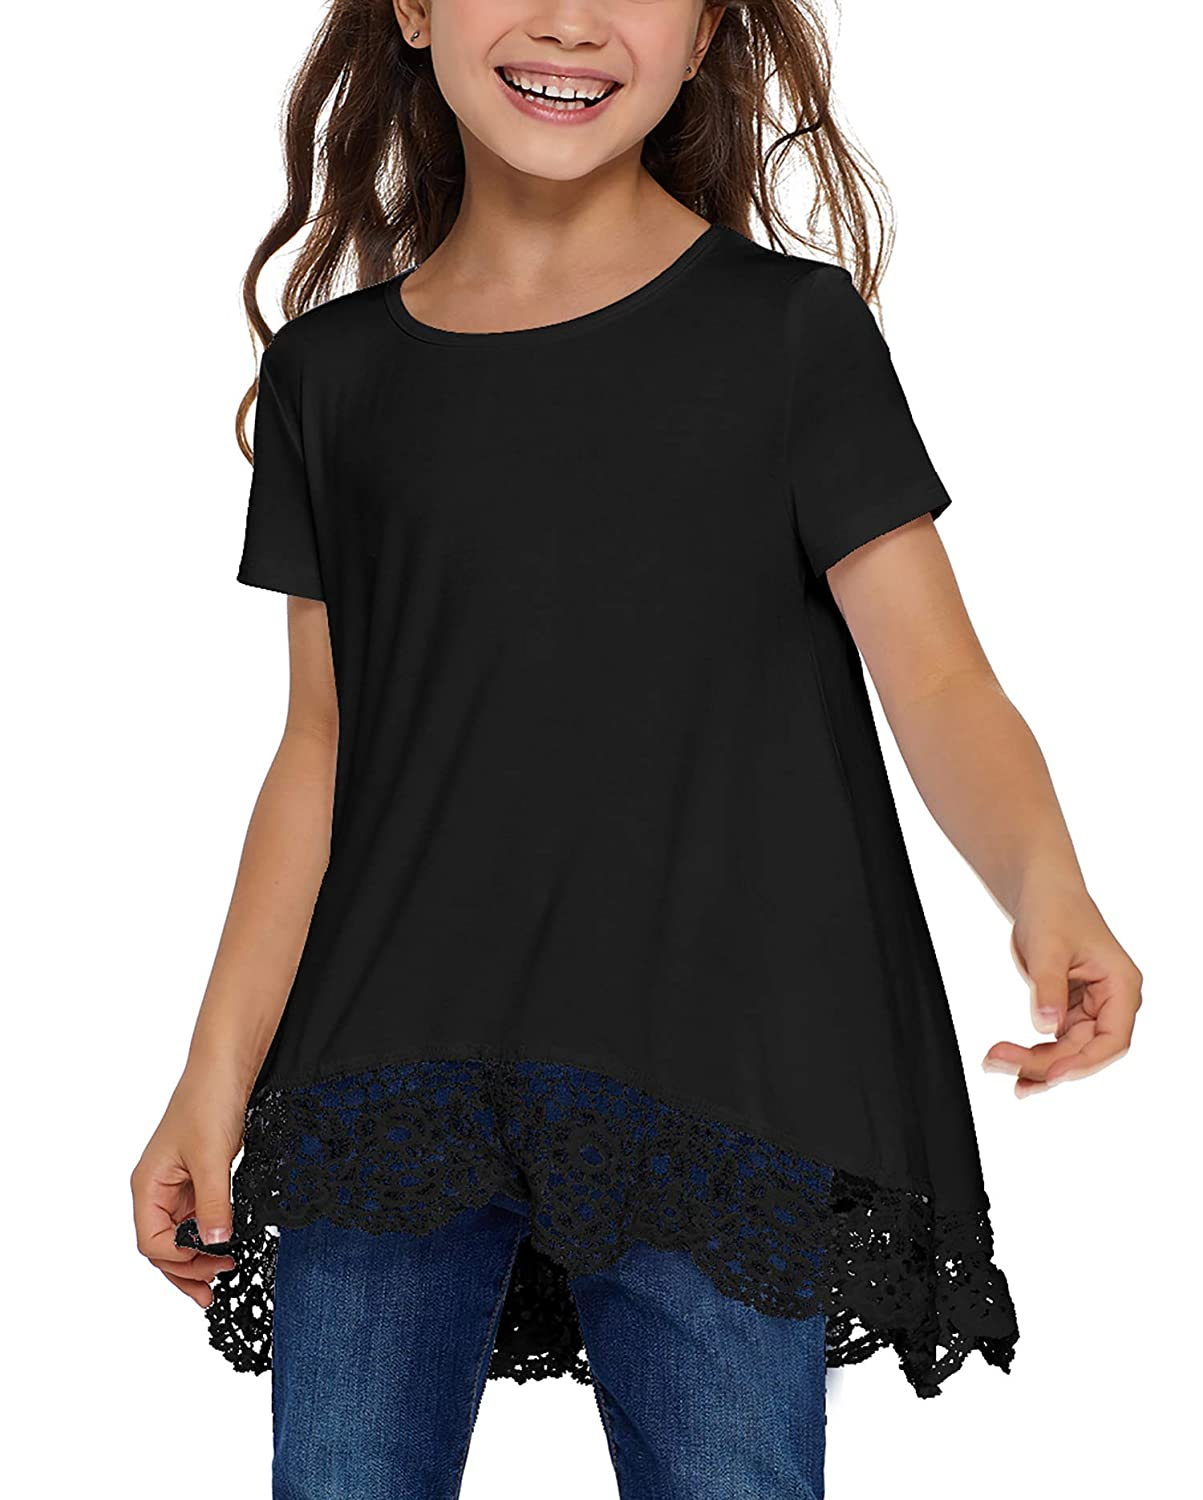 Blibea Girls Casual Loose Short Sleeve Knot Front Tops Tee Shirts Size 4-13